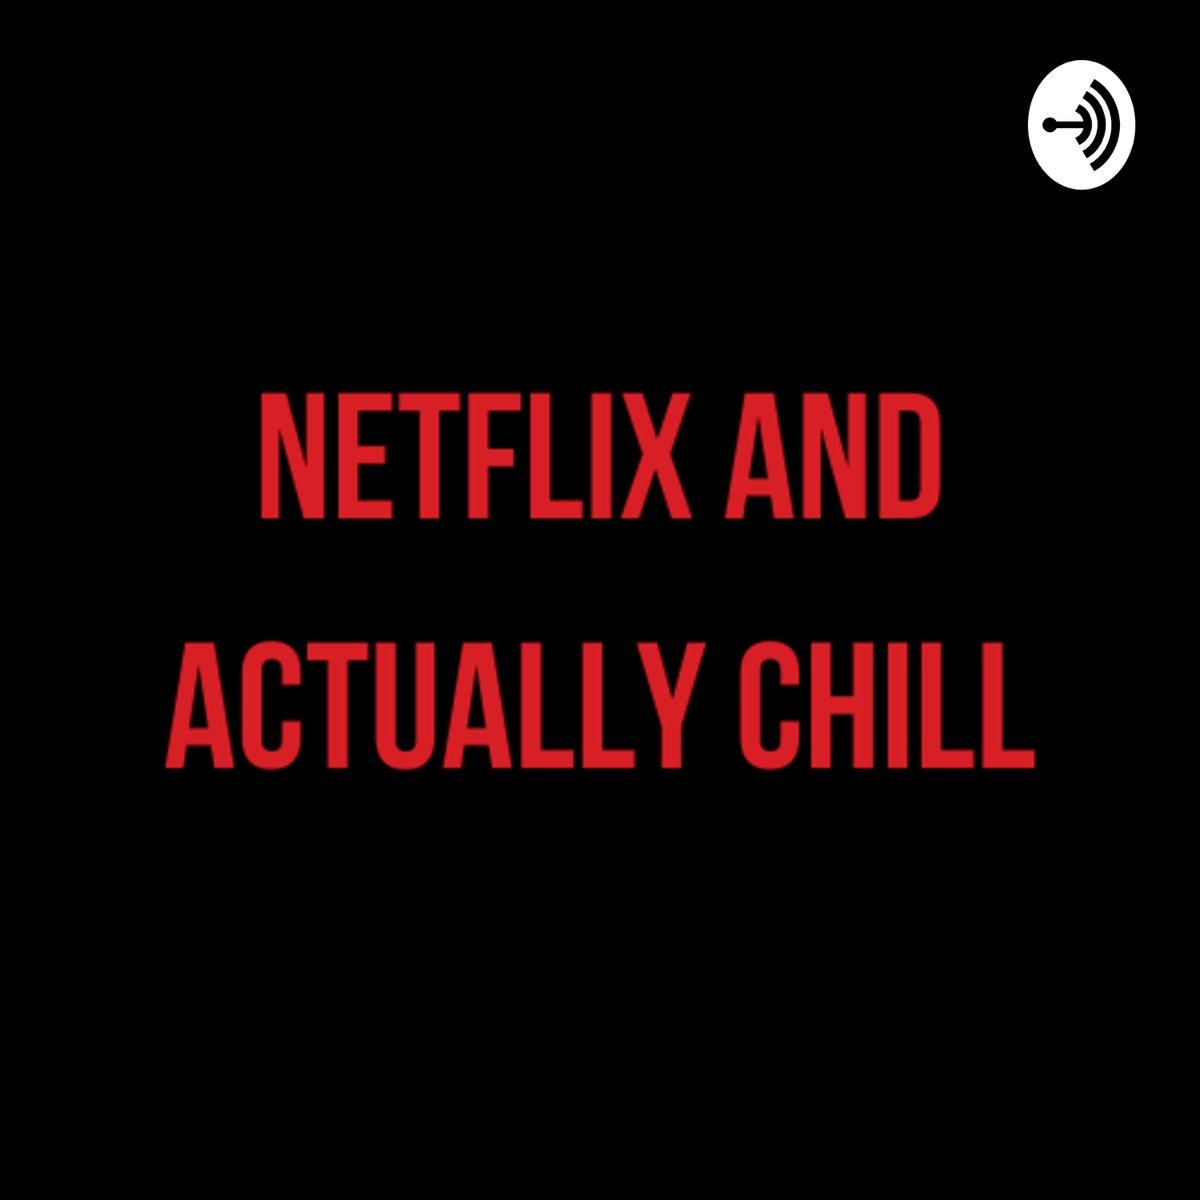 Netflix and Actually Chill